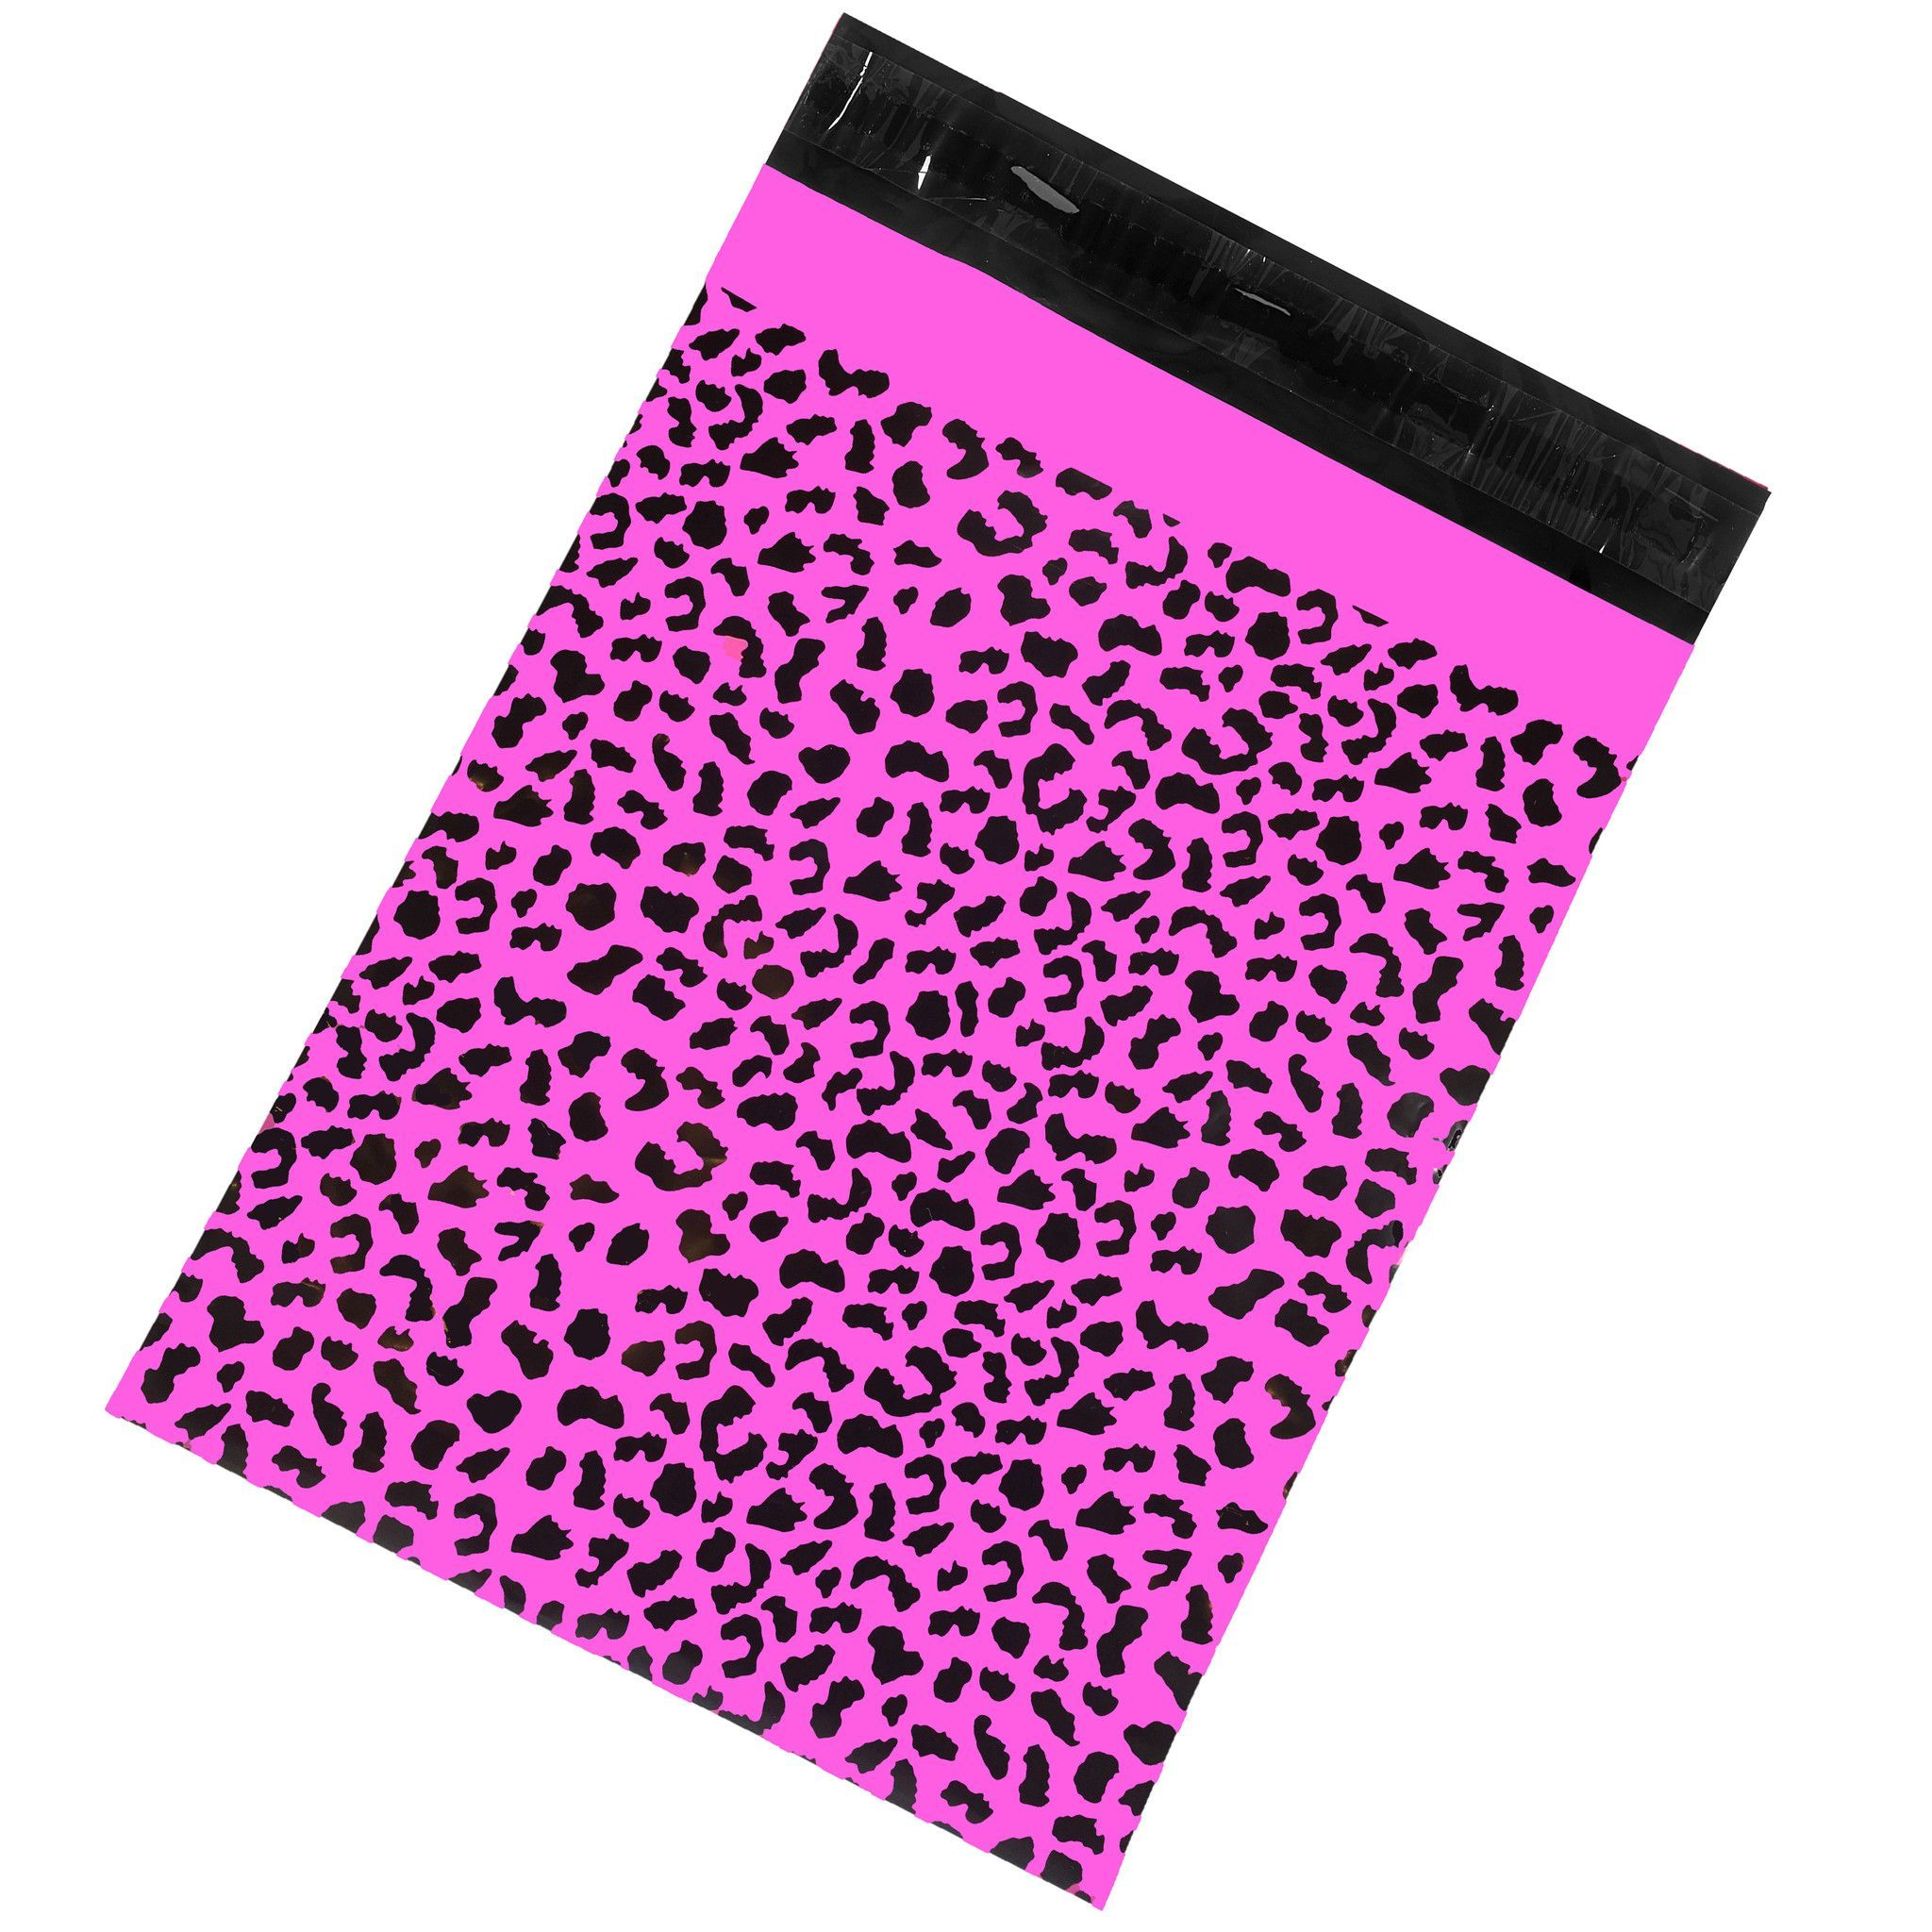 Printed Poly Mailers 10x13 Hot Pink Cheetah Pack of 100